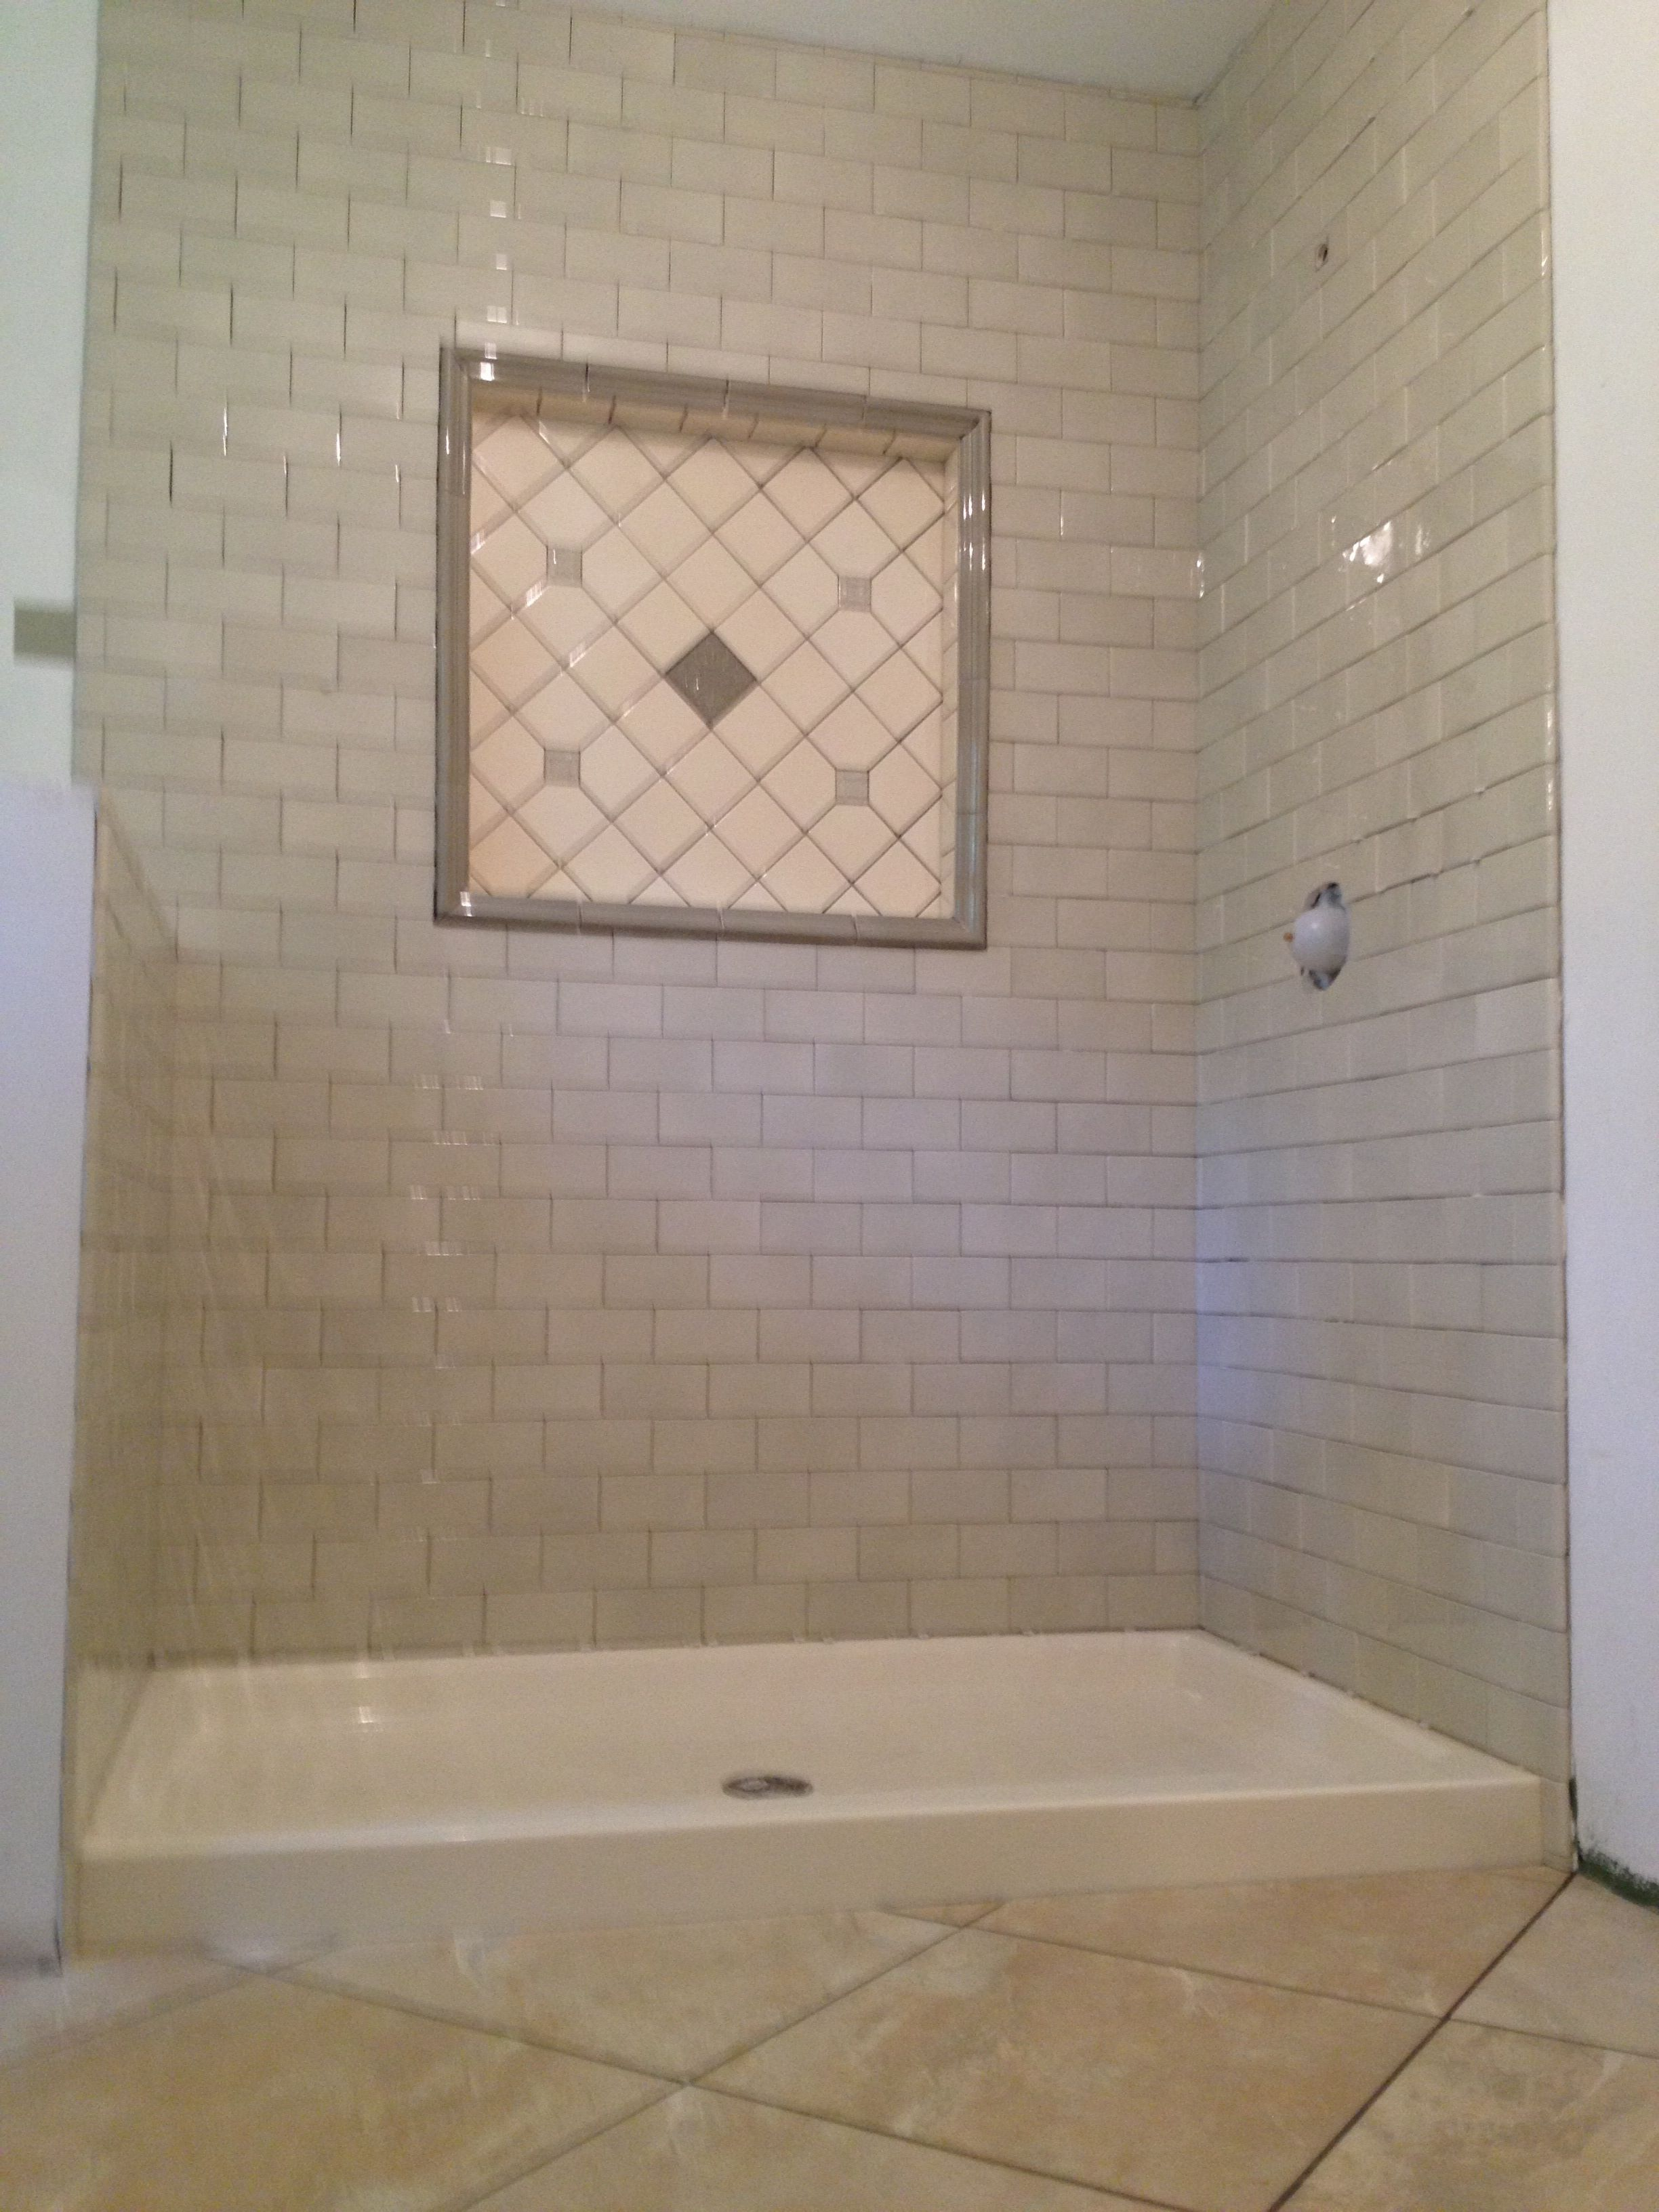 Shower Tile Inserts Google Search